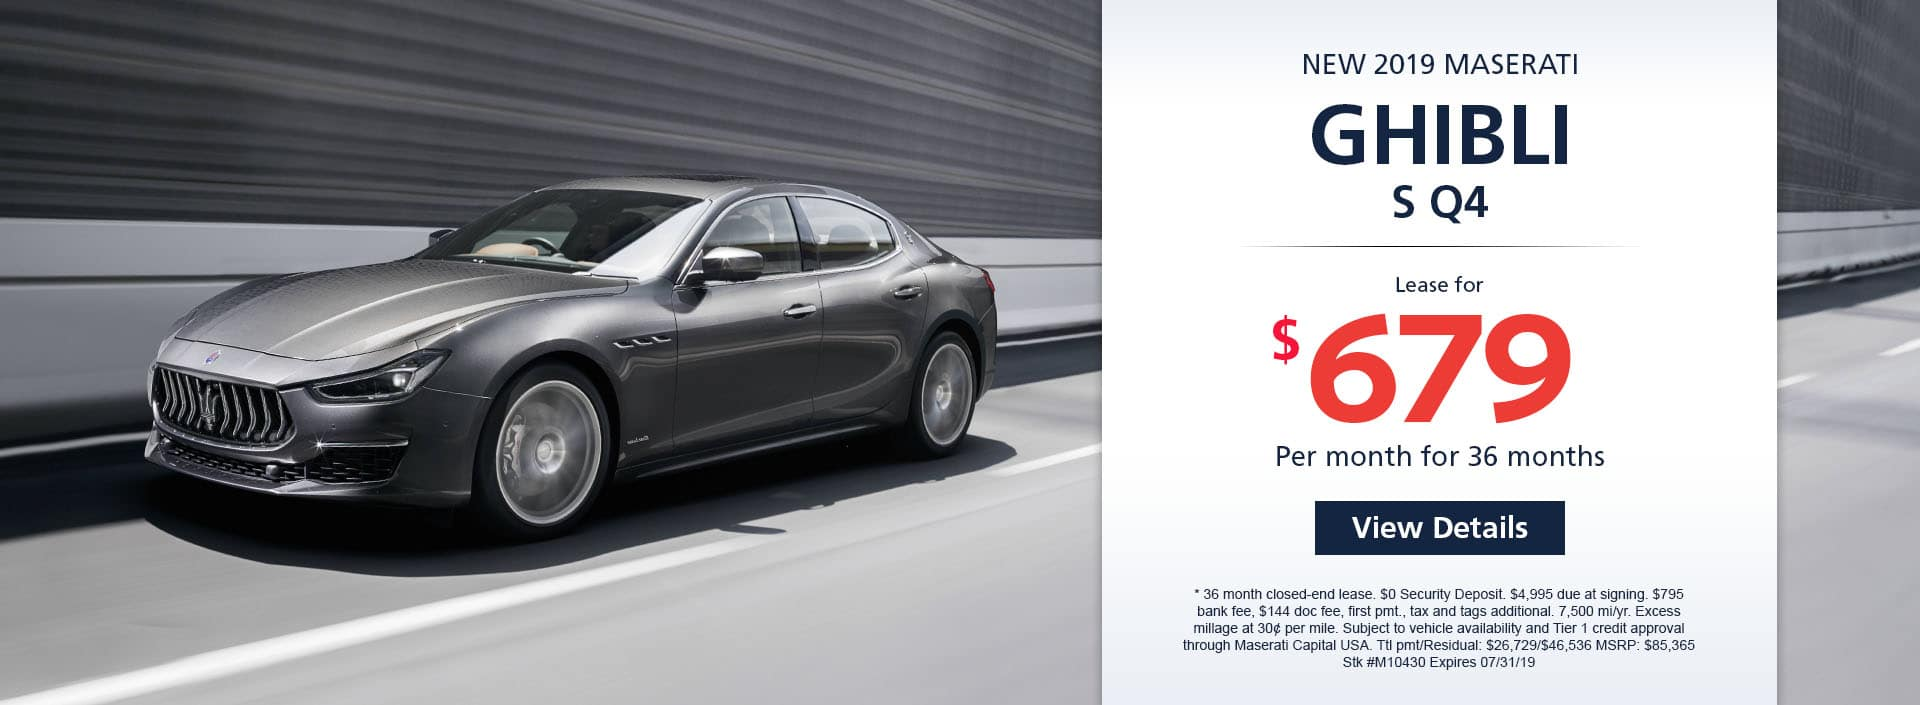 Lease a new 2019 MASERATI GHIBLI SQ4 for $679 a month for 36 months. Or get special 0.9% APR financing for up to 60 months or 1.9% APR financing up to 72 months